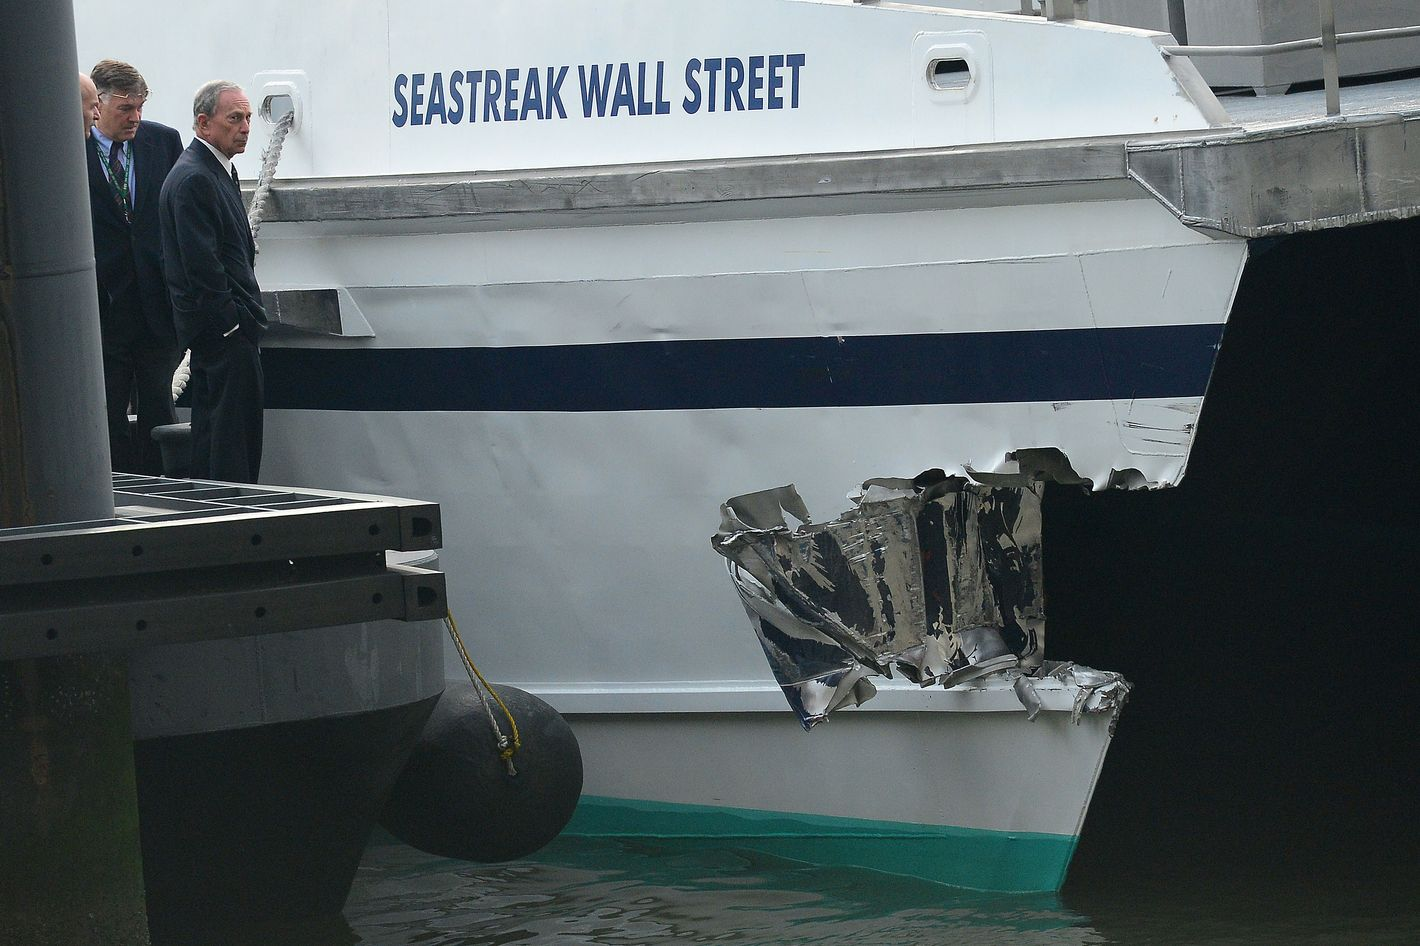 "New York Mayor Michael Bloomberg inspects the damage  after the commuter ferry slammed into a pier in New York, January 9, 2013.  About 50 people were injured when a rush-hour ferry packed with commuters smashed into a pier in New York City on Wednesday, firefighters said. The accident took place at 8:45 am (1345 GMT) on Pier 11 in the East River in lower Manhattan, not far from Wall Street, the New York Fire Department said. The ferry was arriving from New Jersey. ""We are assessing 50 patients on the scene right now. We don't know what kind of injuries they have,"" an NYFD spokeswoman said."